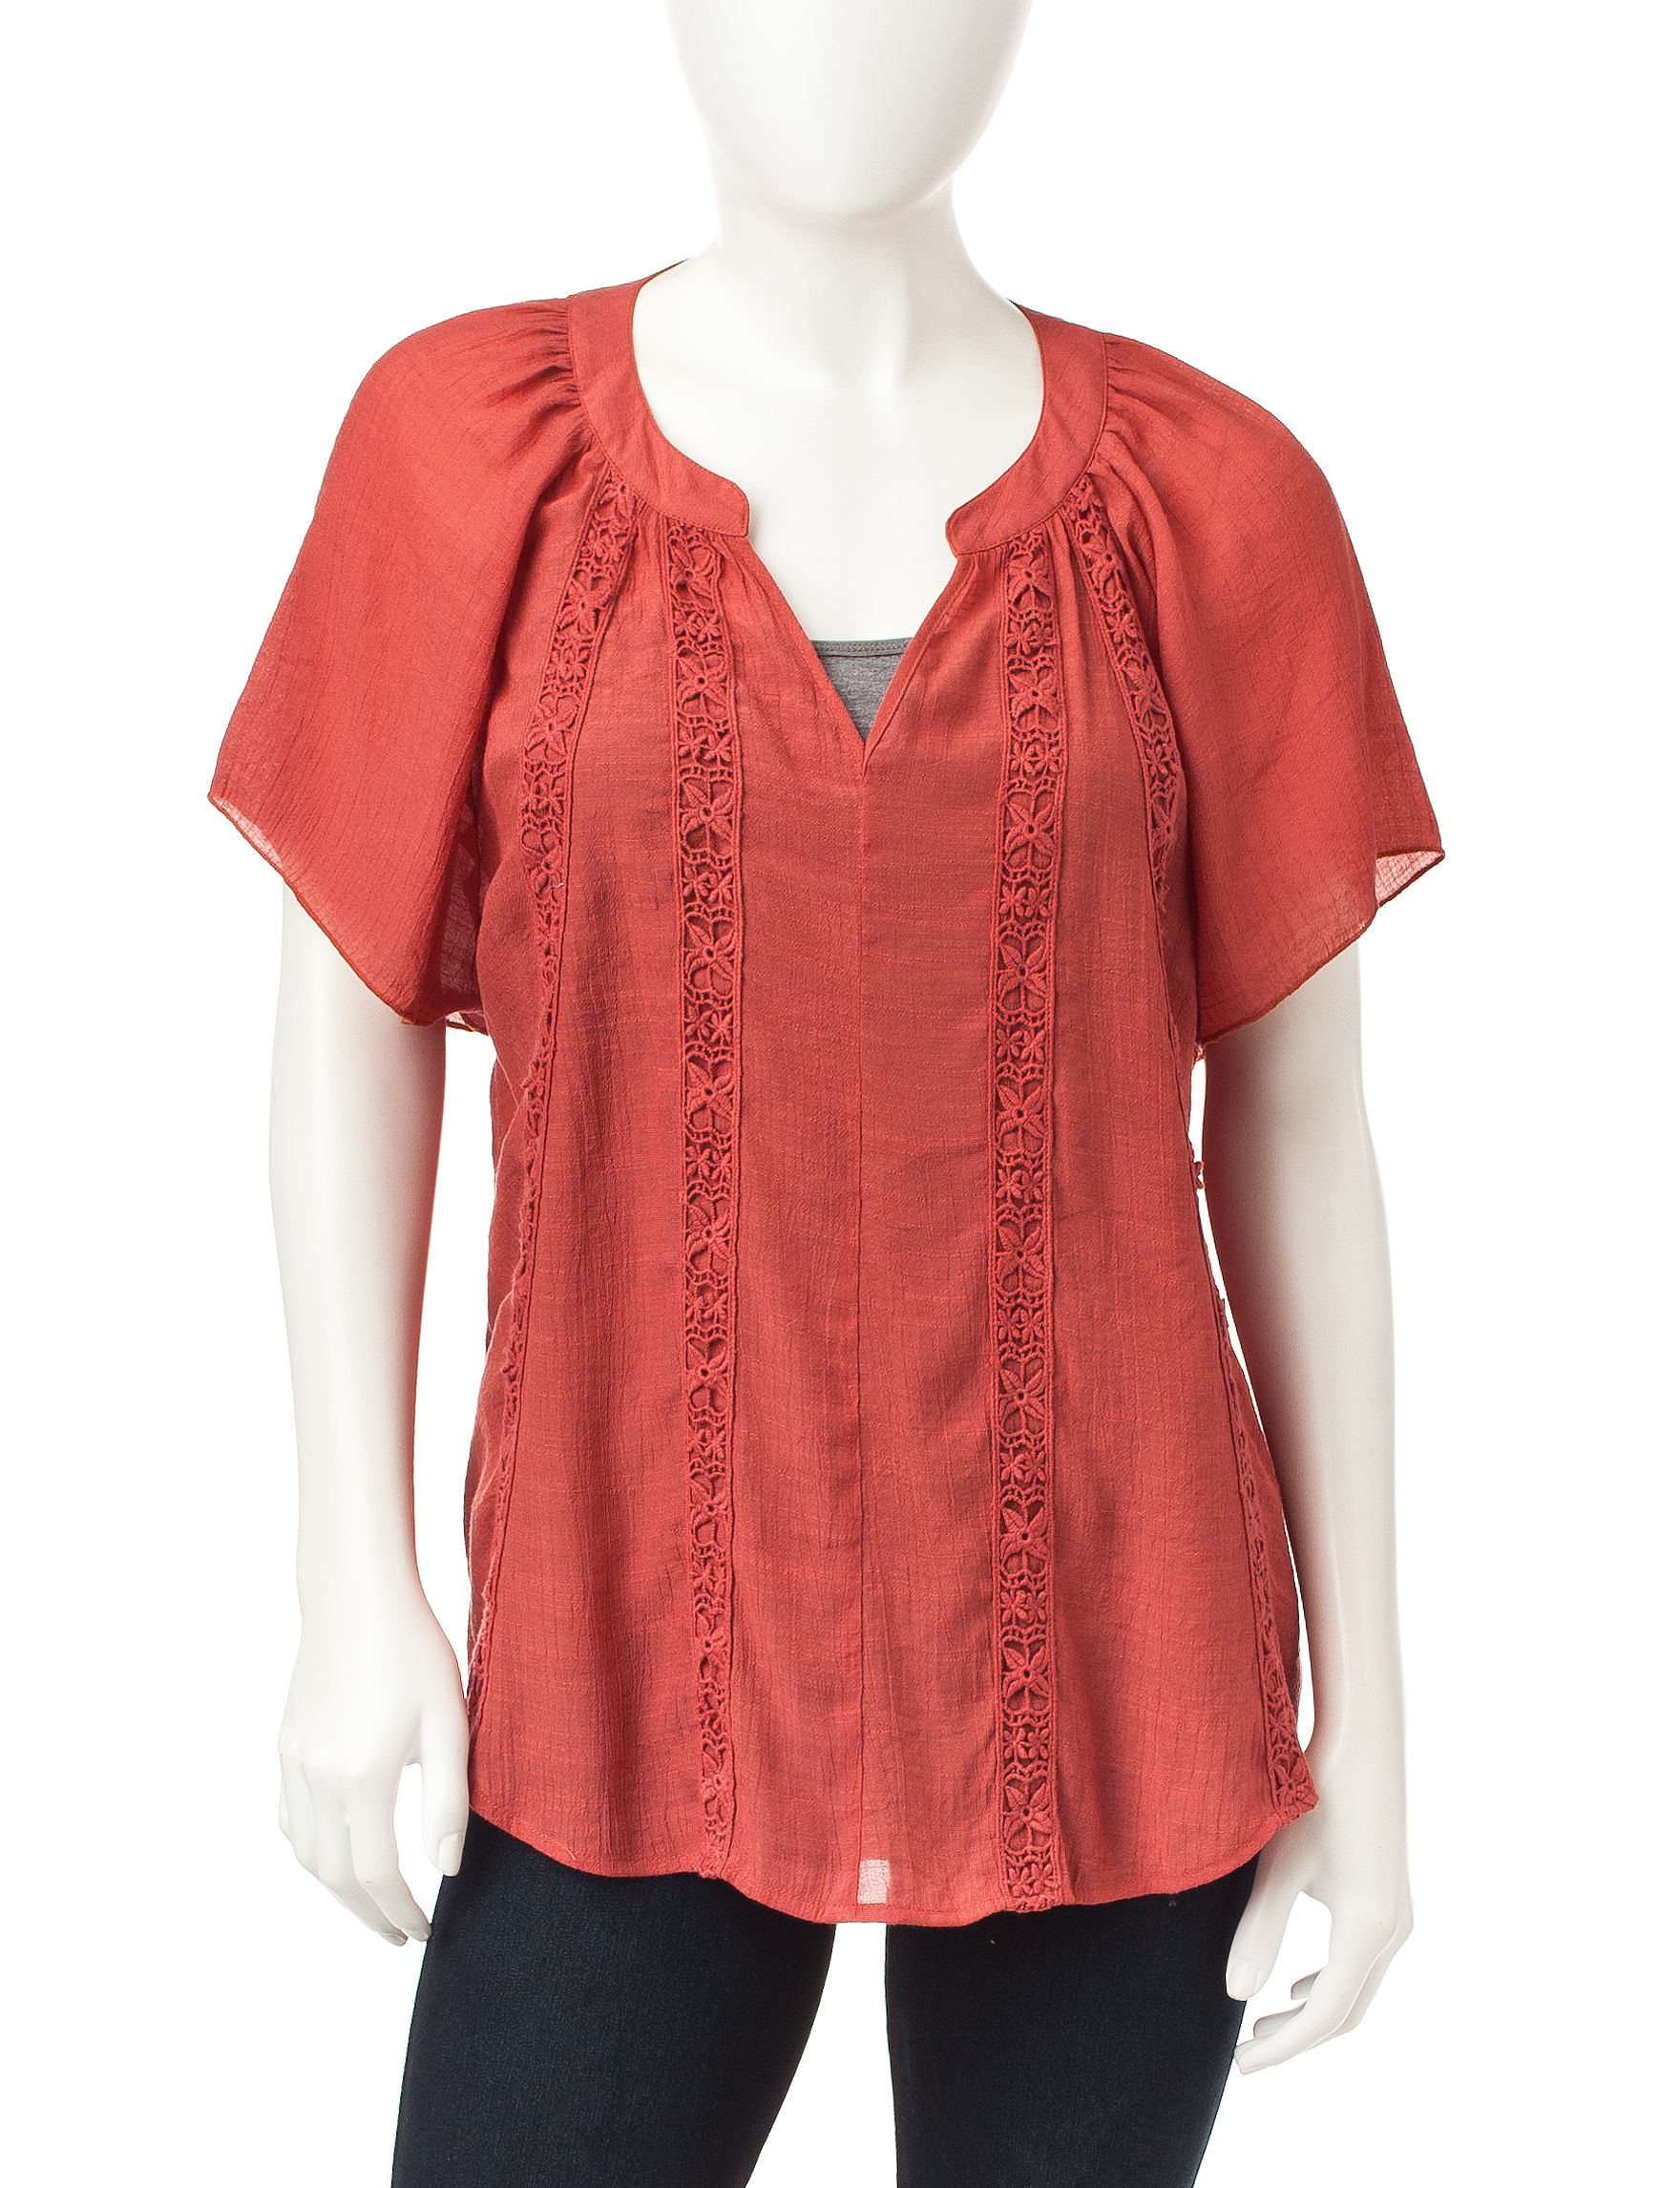 Signature Studio Terracotta Shirts & Blouses